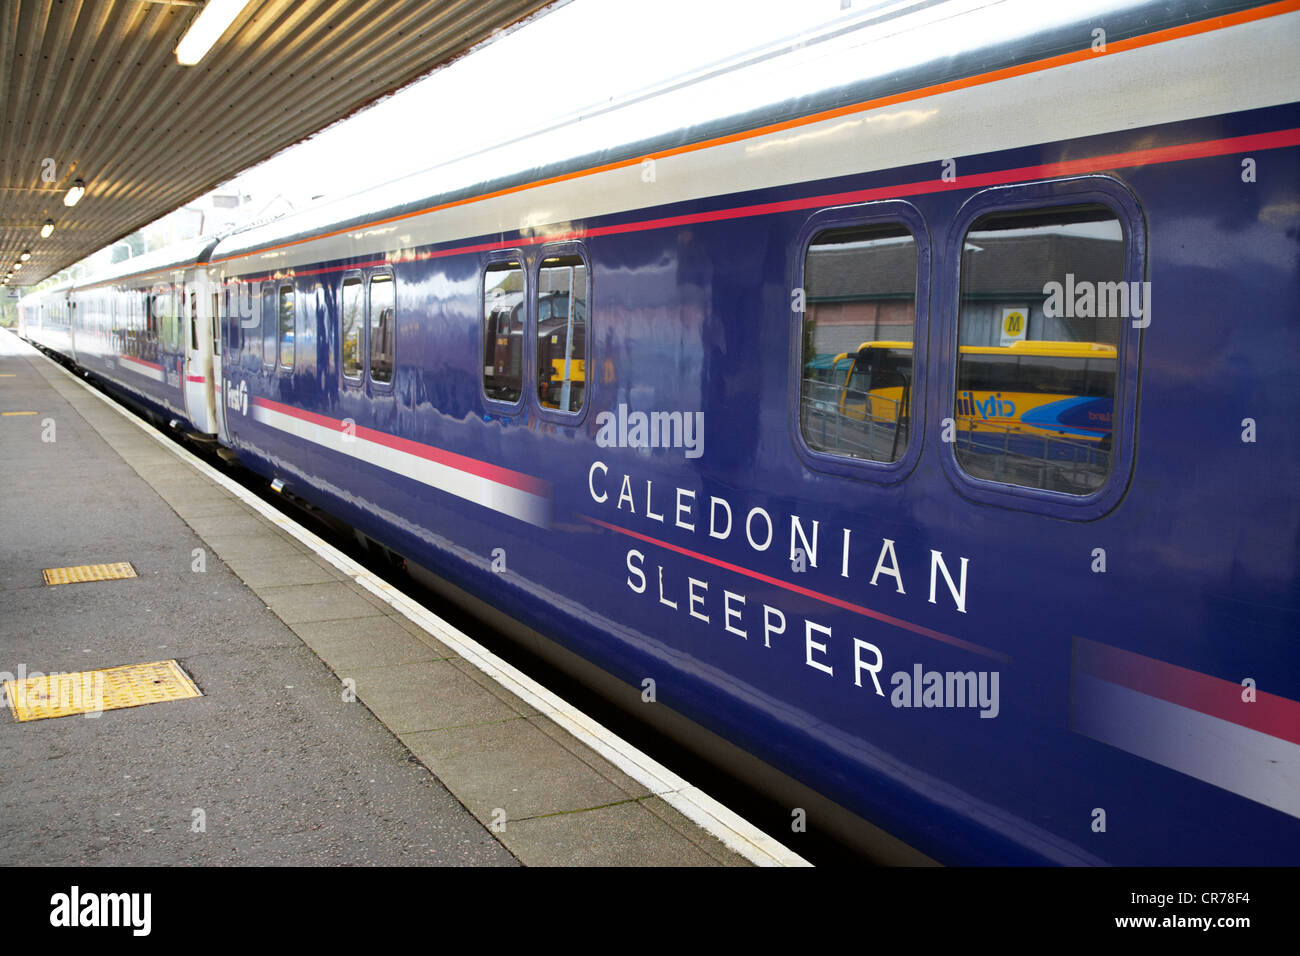 caledonian sleeper overnight sleeper train from fort william to london known as the deerstalker scotland uk - Stock Image